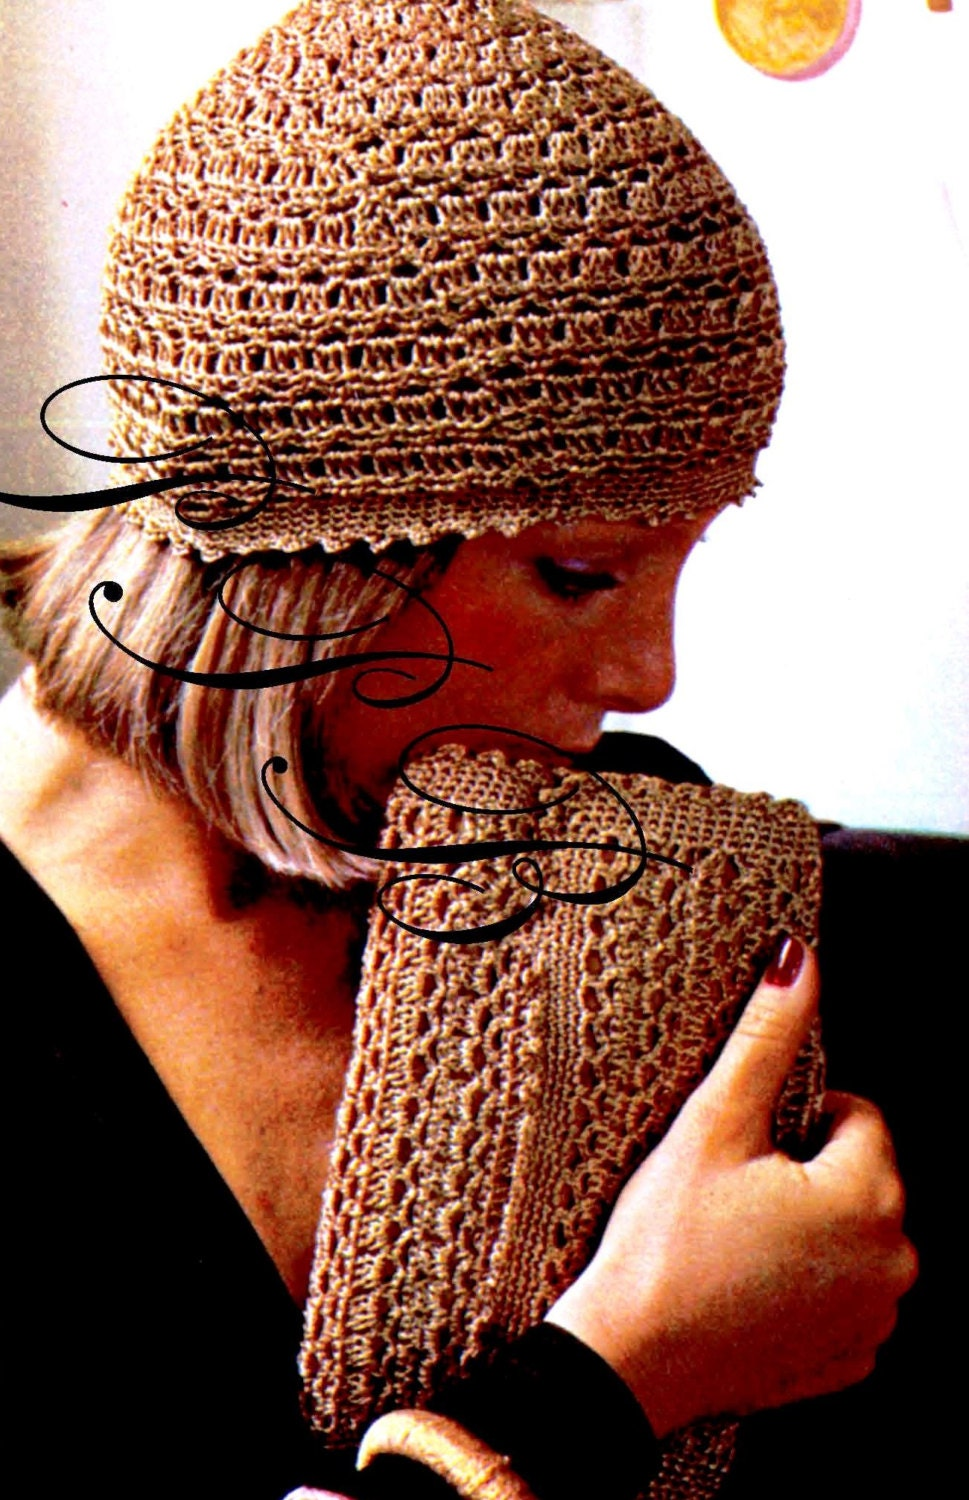 c1f0d47334d Crochet Hat and Bag    Evening Cap and Clutch    PDF Crochet Pattern     Digital Download    1970 s Pattern from PastPatternsBoutique on Etsy Studio